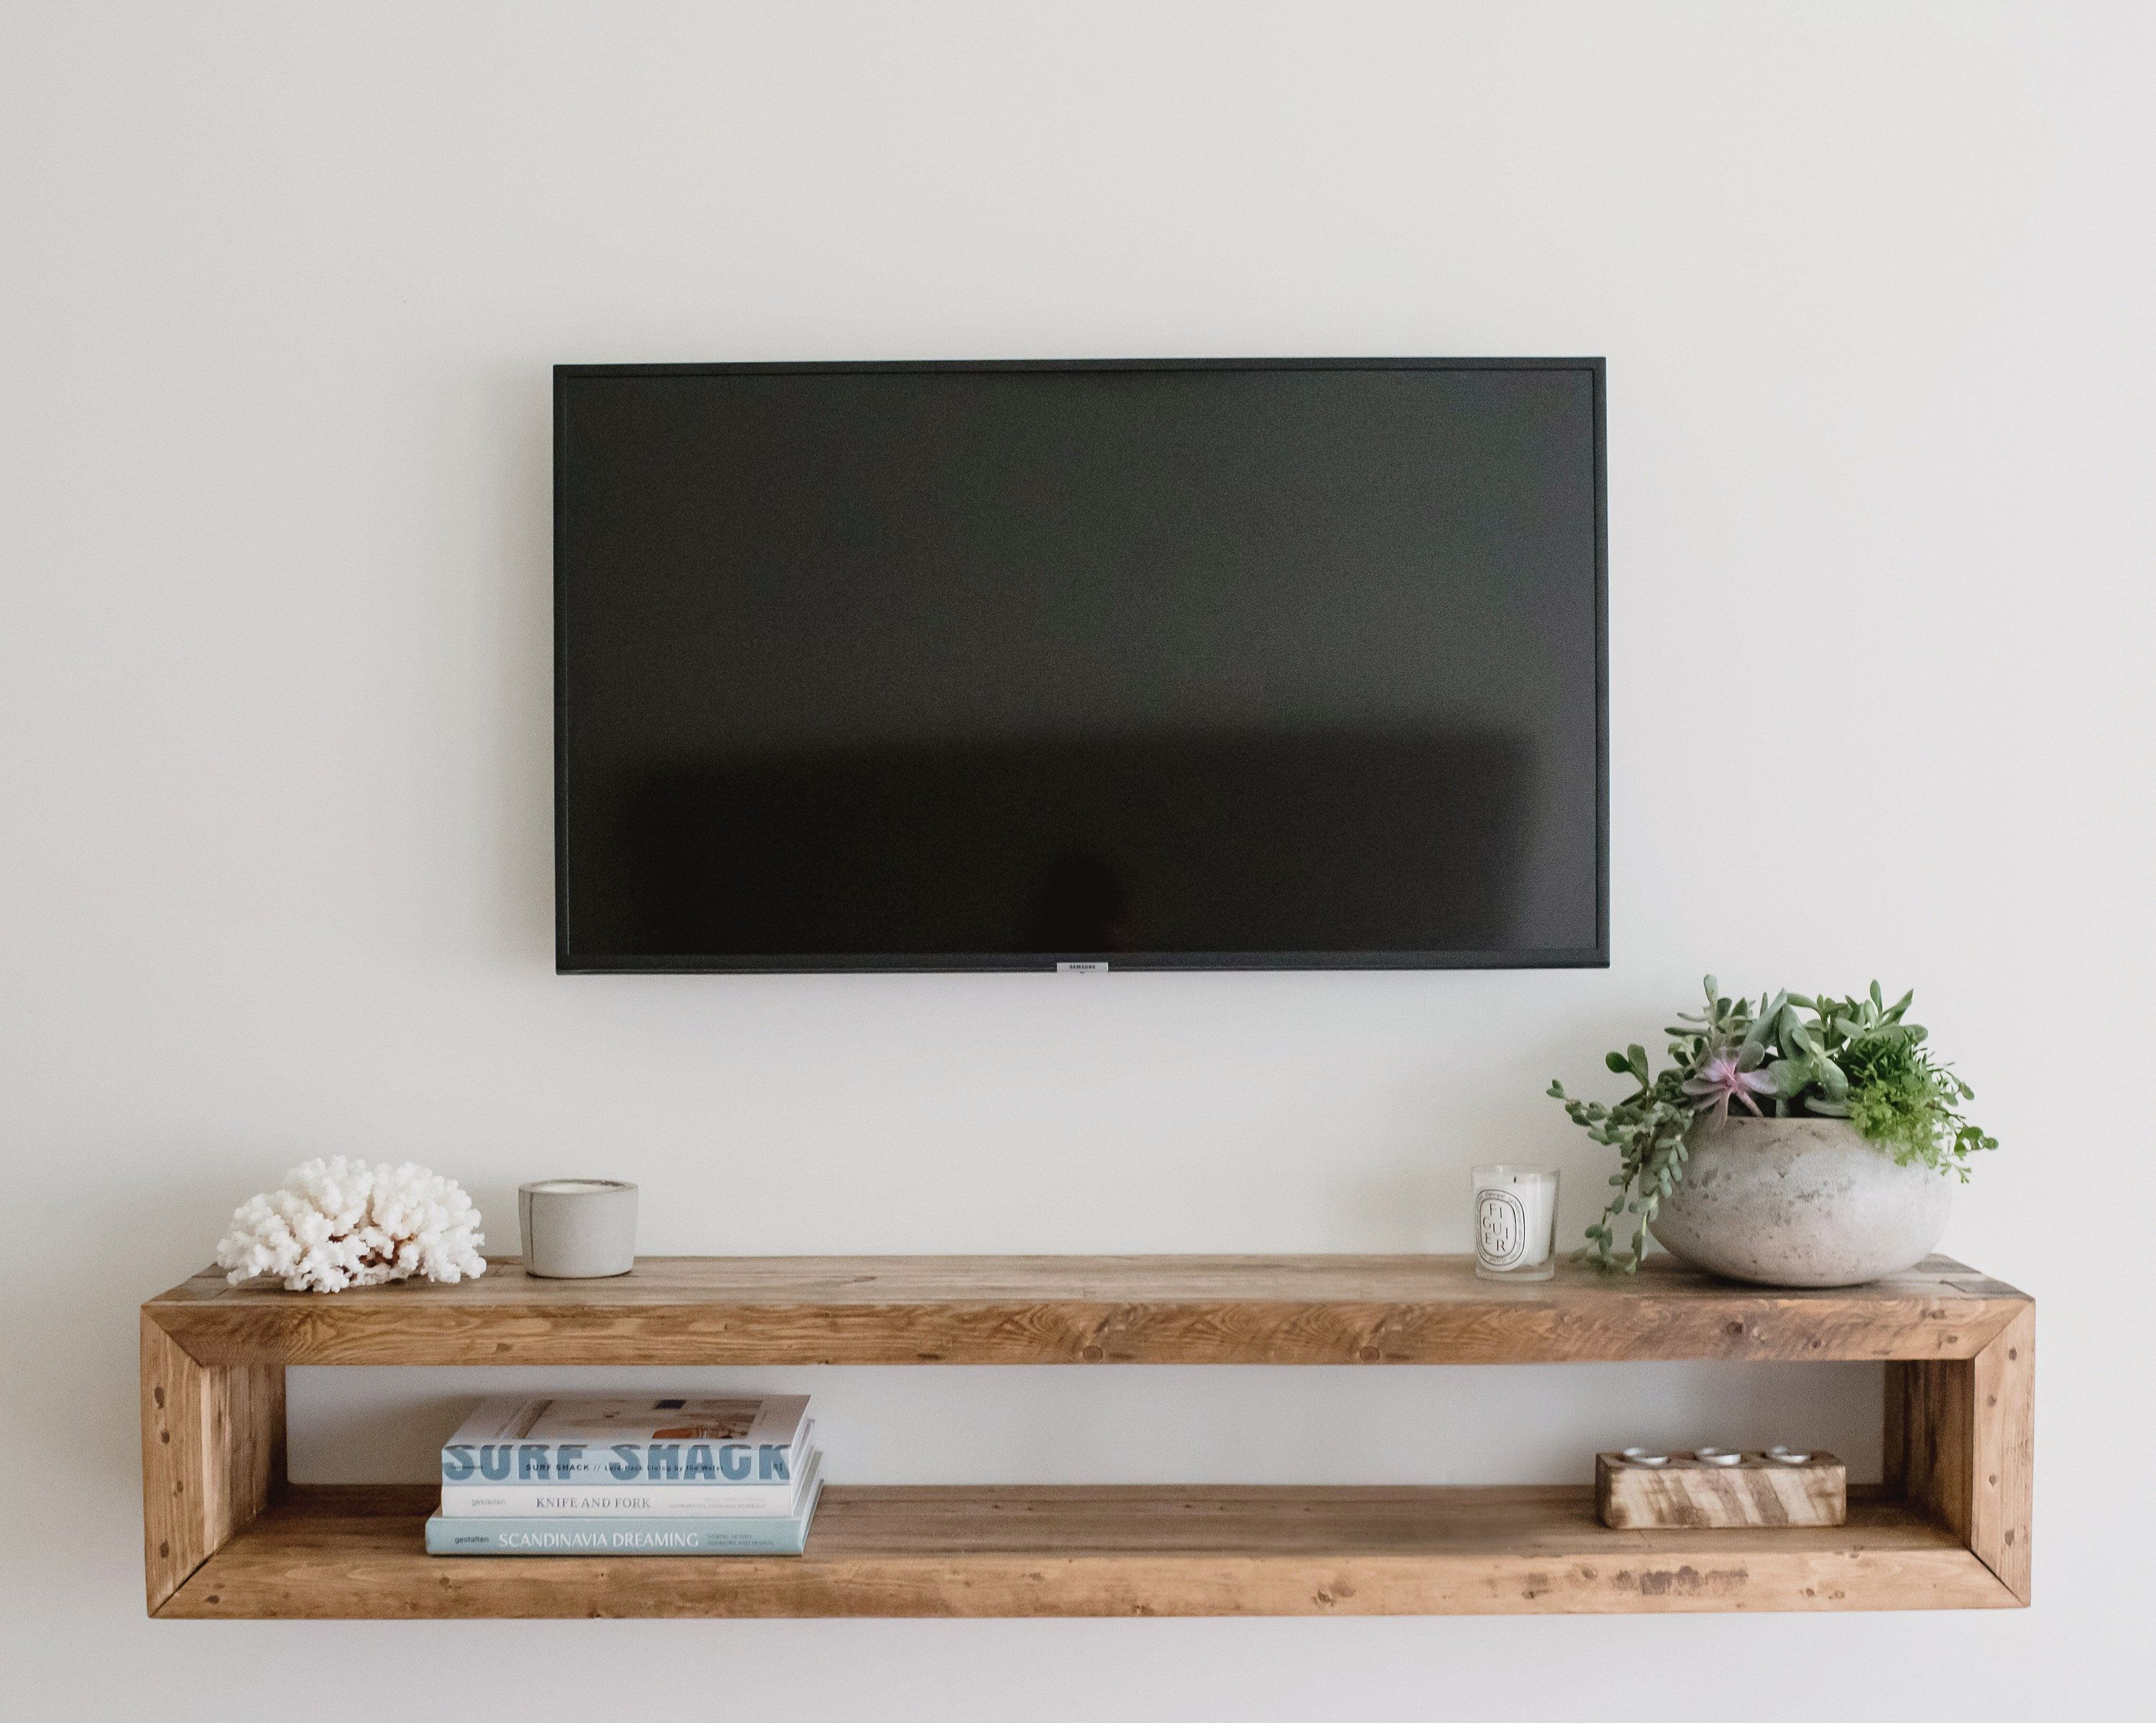 how to mount a 75 inch tv on the wall without studs